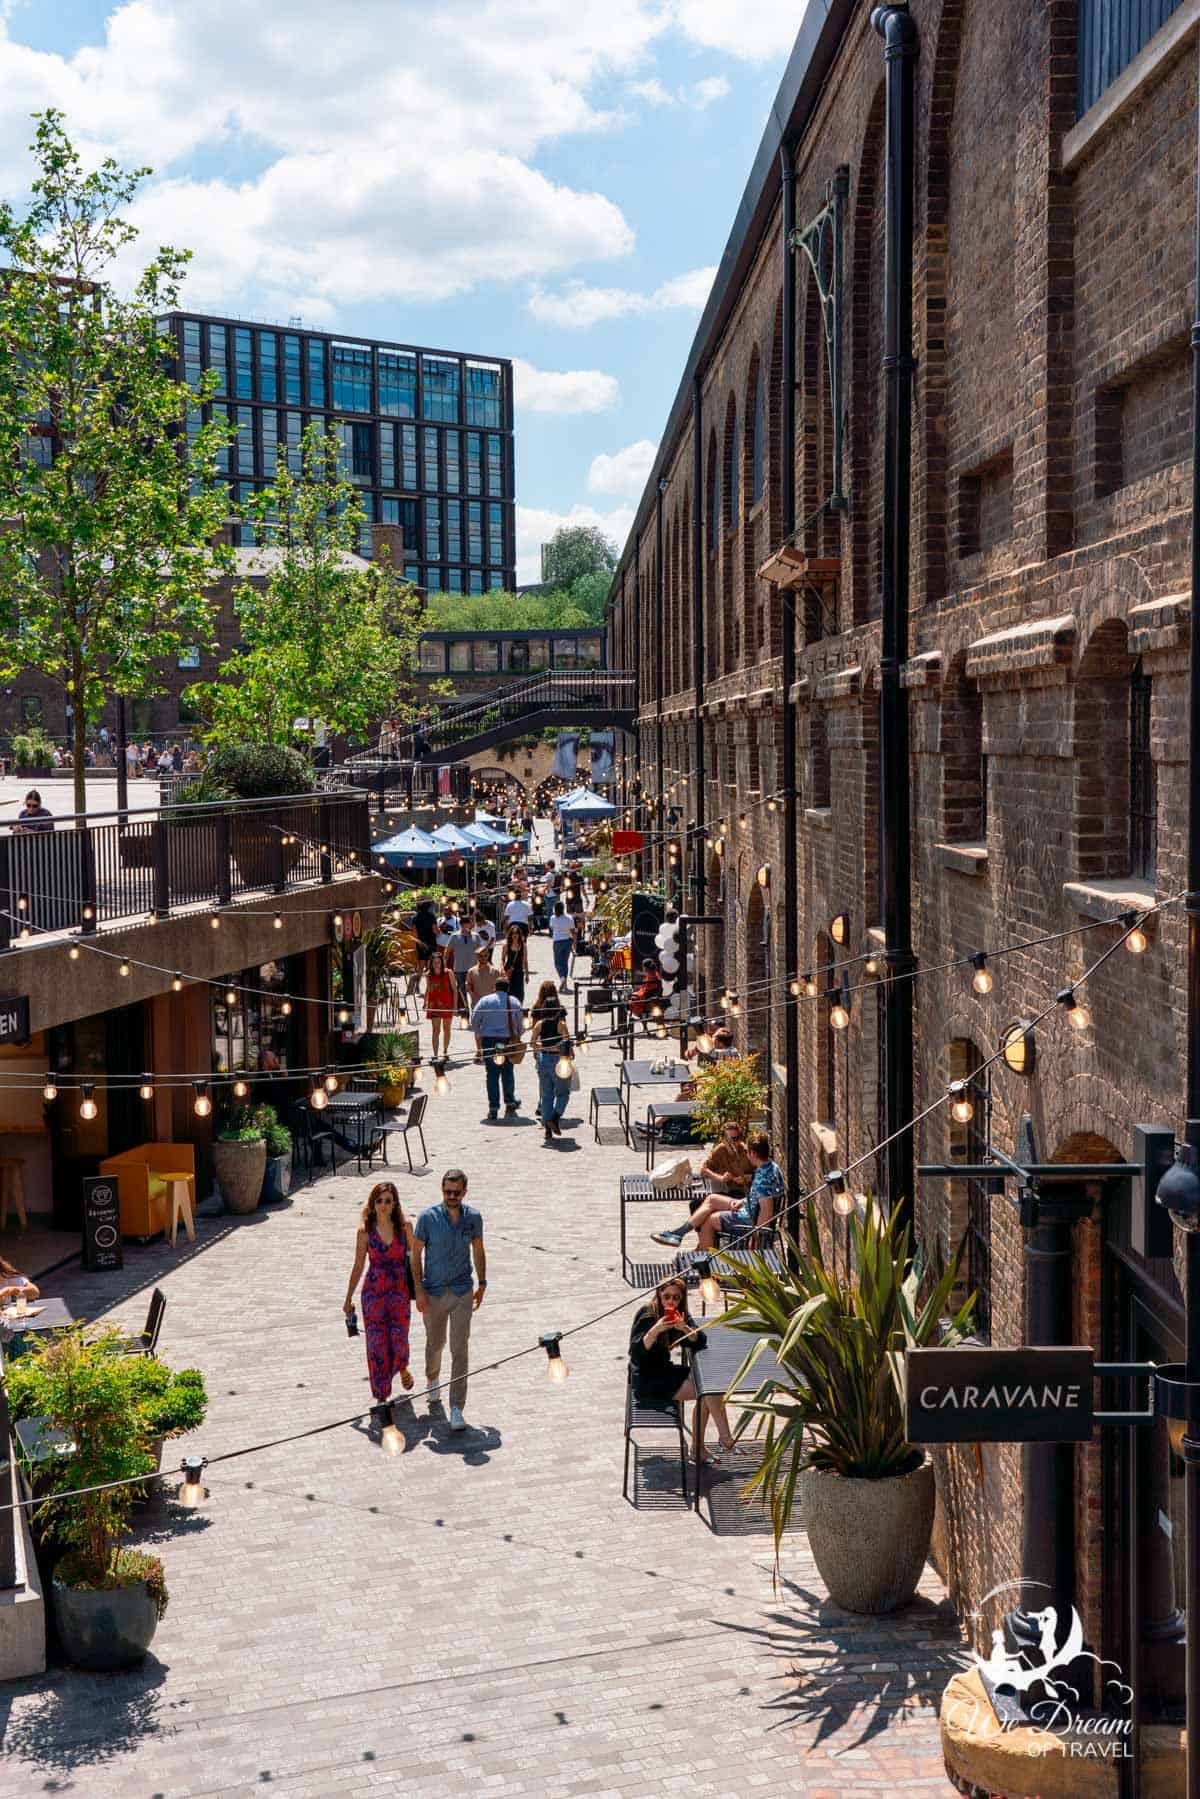 Shops and restaurants line a walkway with overhanging lights at Coal's Drop Yard, King's Cross, London